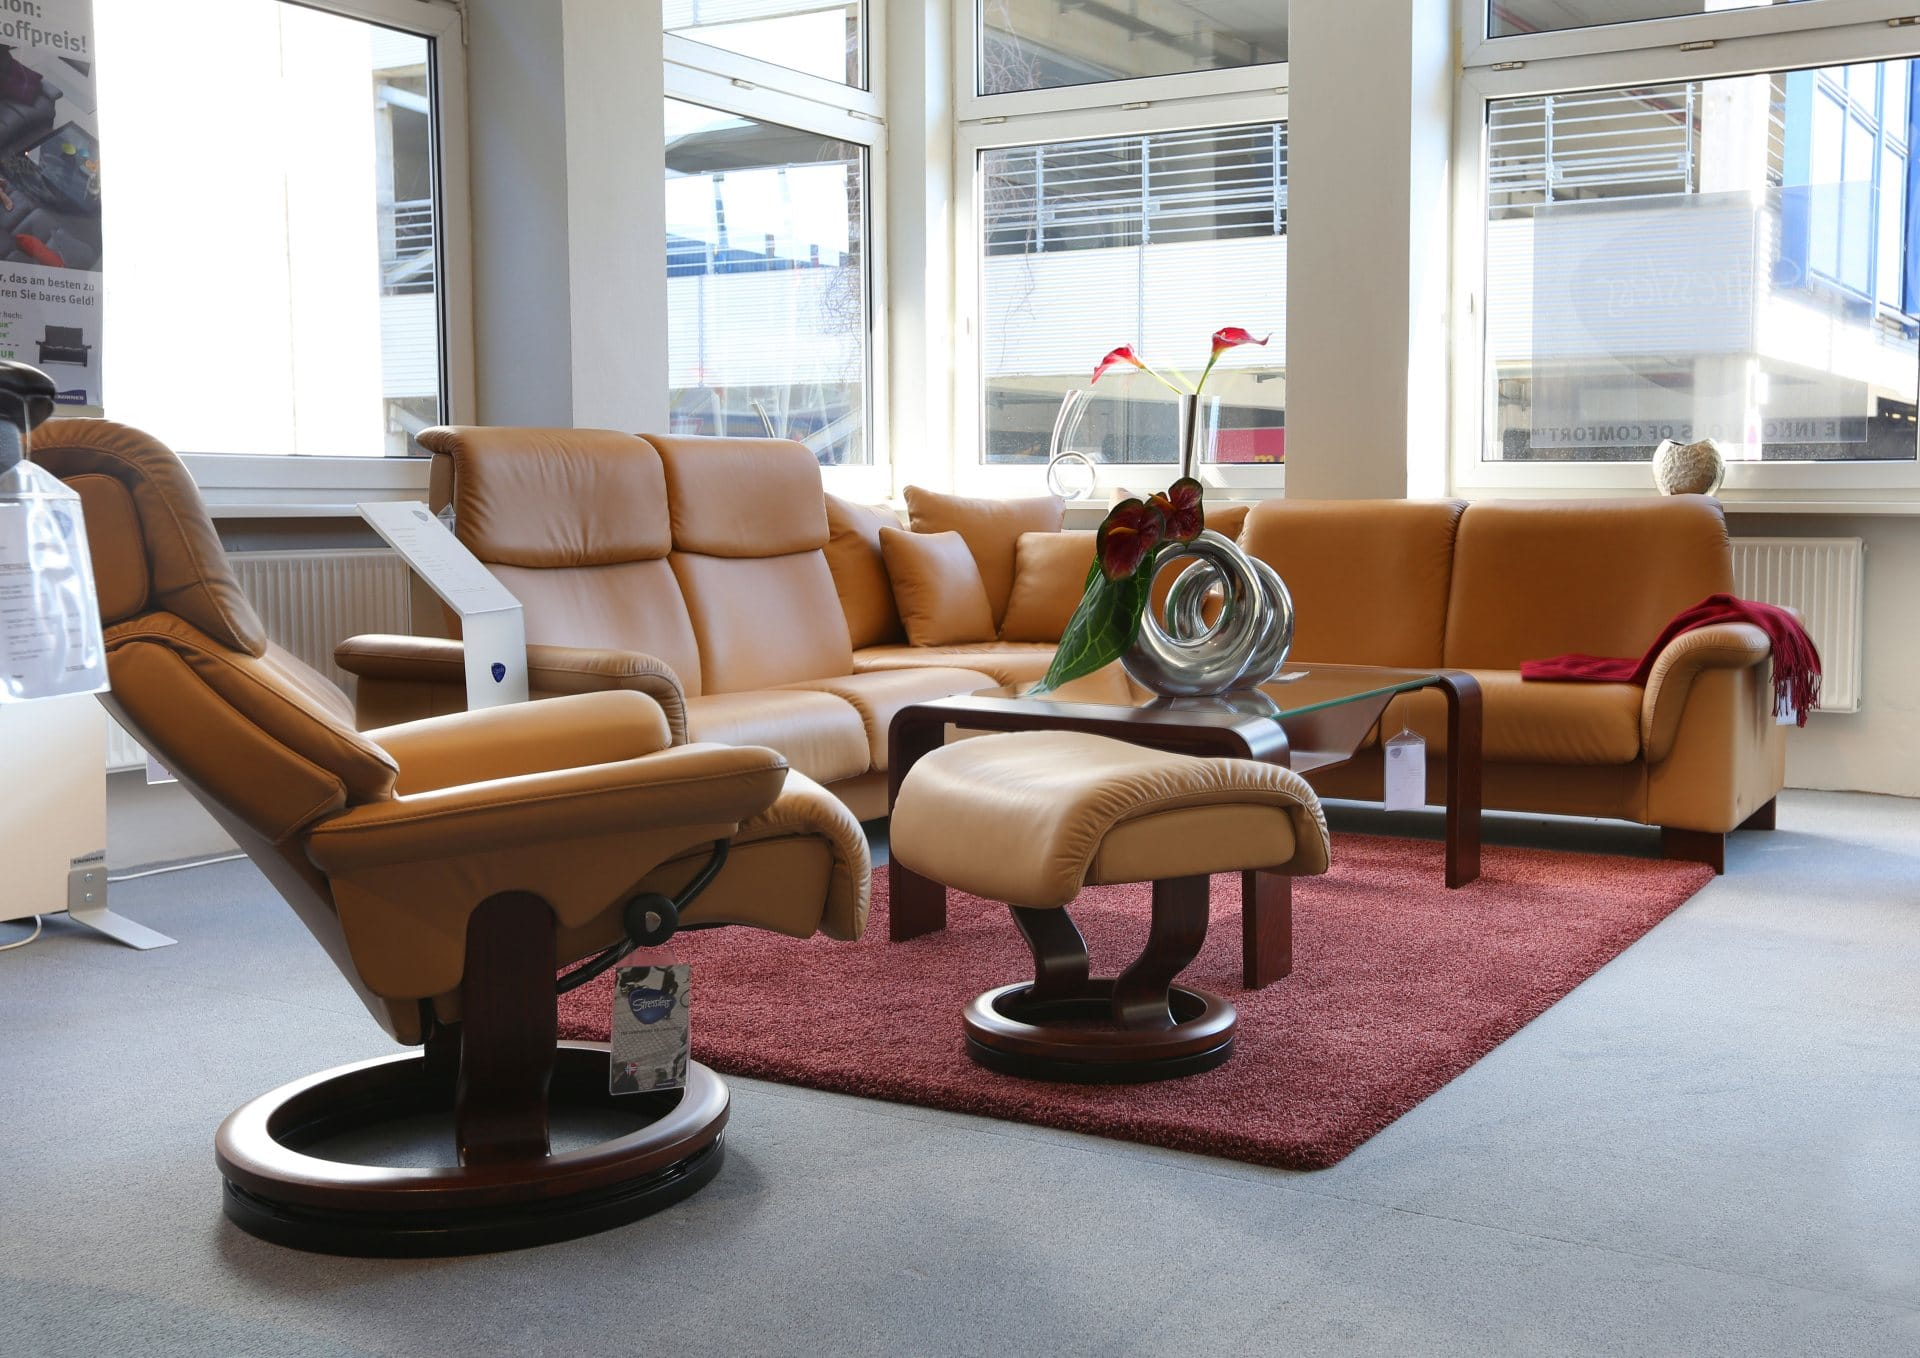 Stressless House of Comfort Spandau Berlin